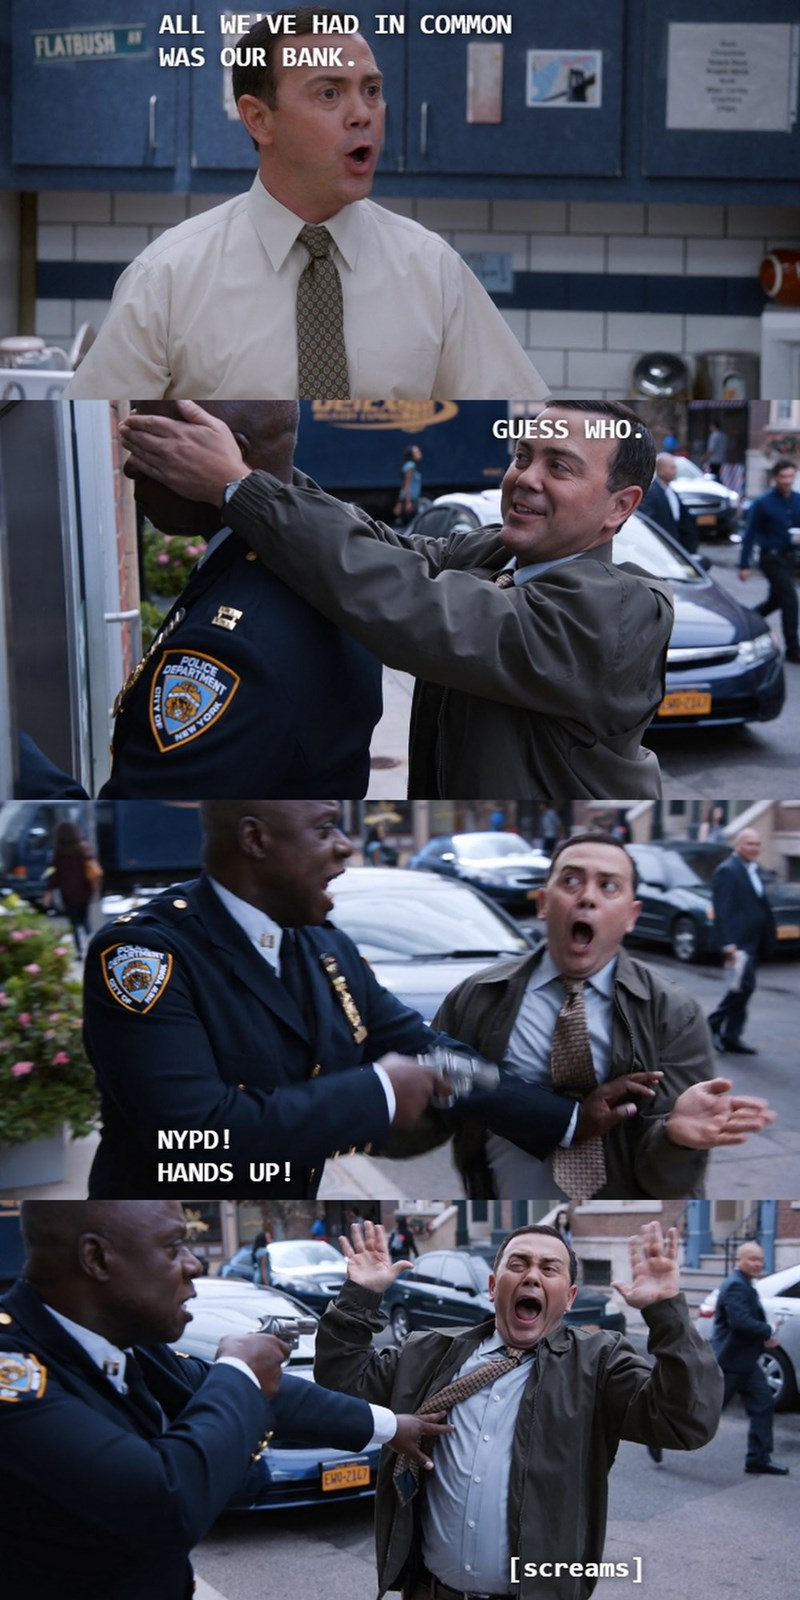 Police officer - ALL WE'VE HAD IN COMMON FLATBUSH WAS OUR BANK. GUESS WHO. POLICE DEPARTMENT VEW YORK NYPD! HANDS UP! EHO-2147 [screams] waa CTY O CTy OF